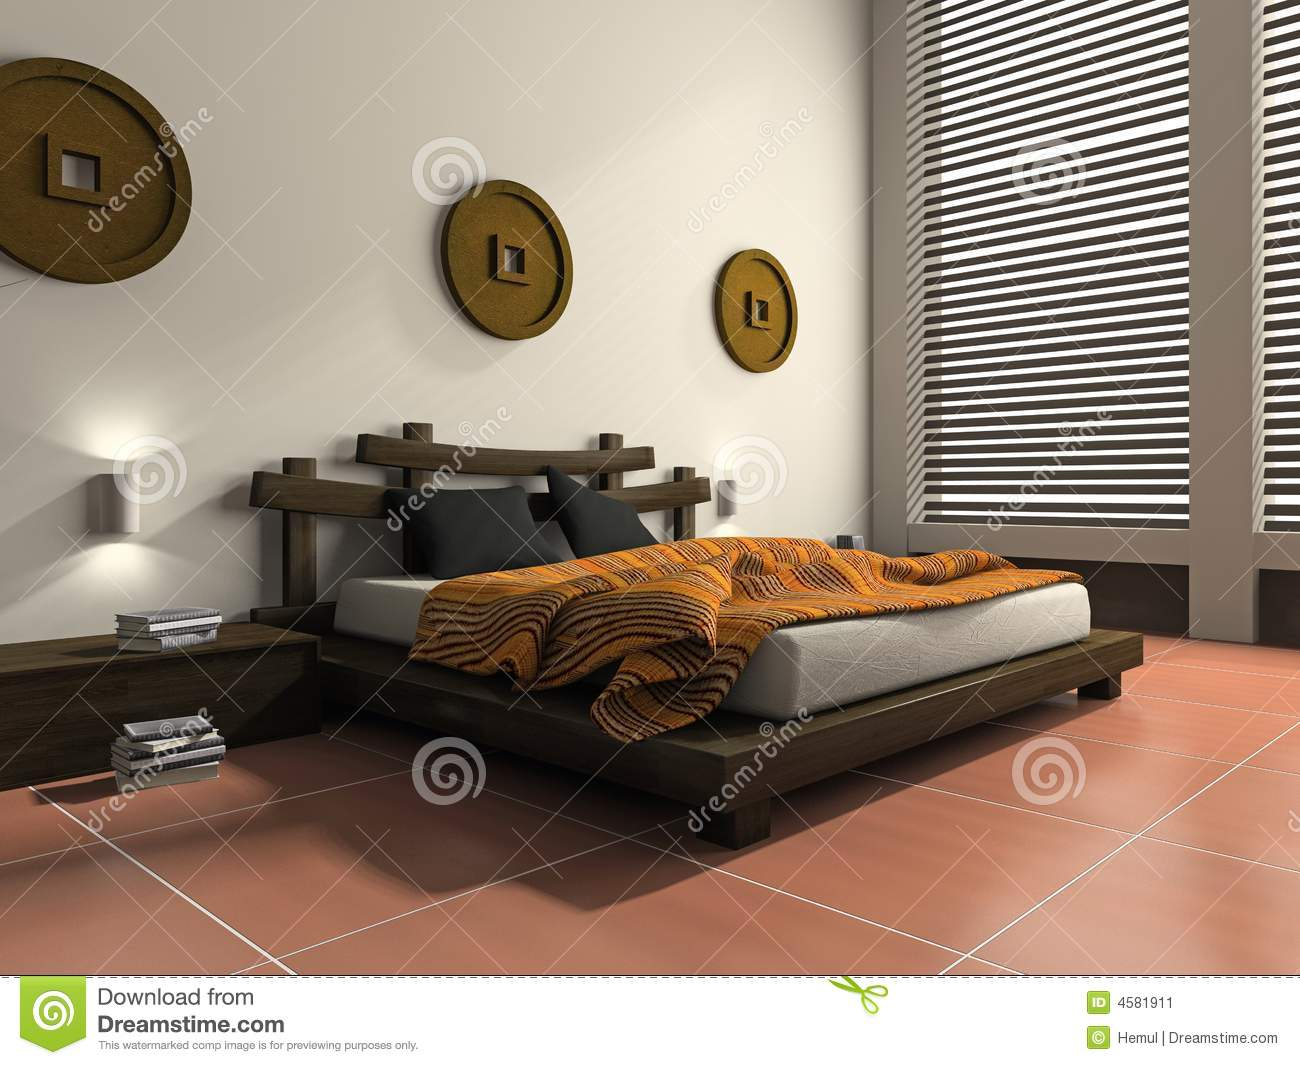 Modern Bedroom In Ethnic Style Stock Image - Image: 4581911